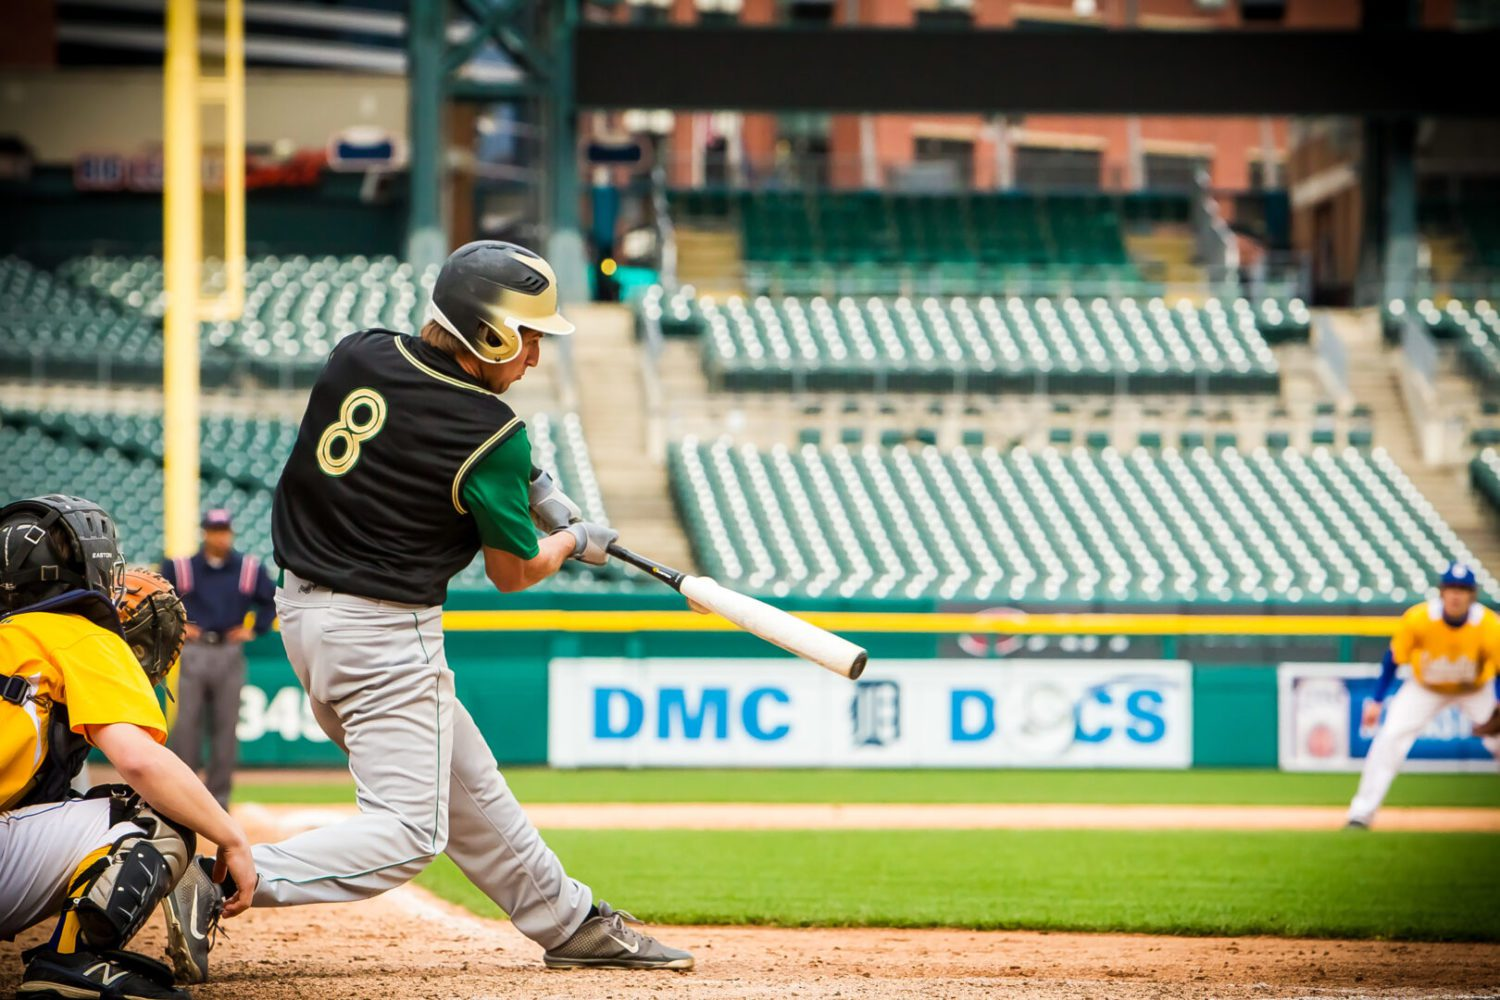 Photos from Muskegon Catholic's baseball game at Comerica Park against Grand Rapids Catholic on Thursday